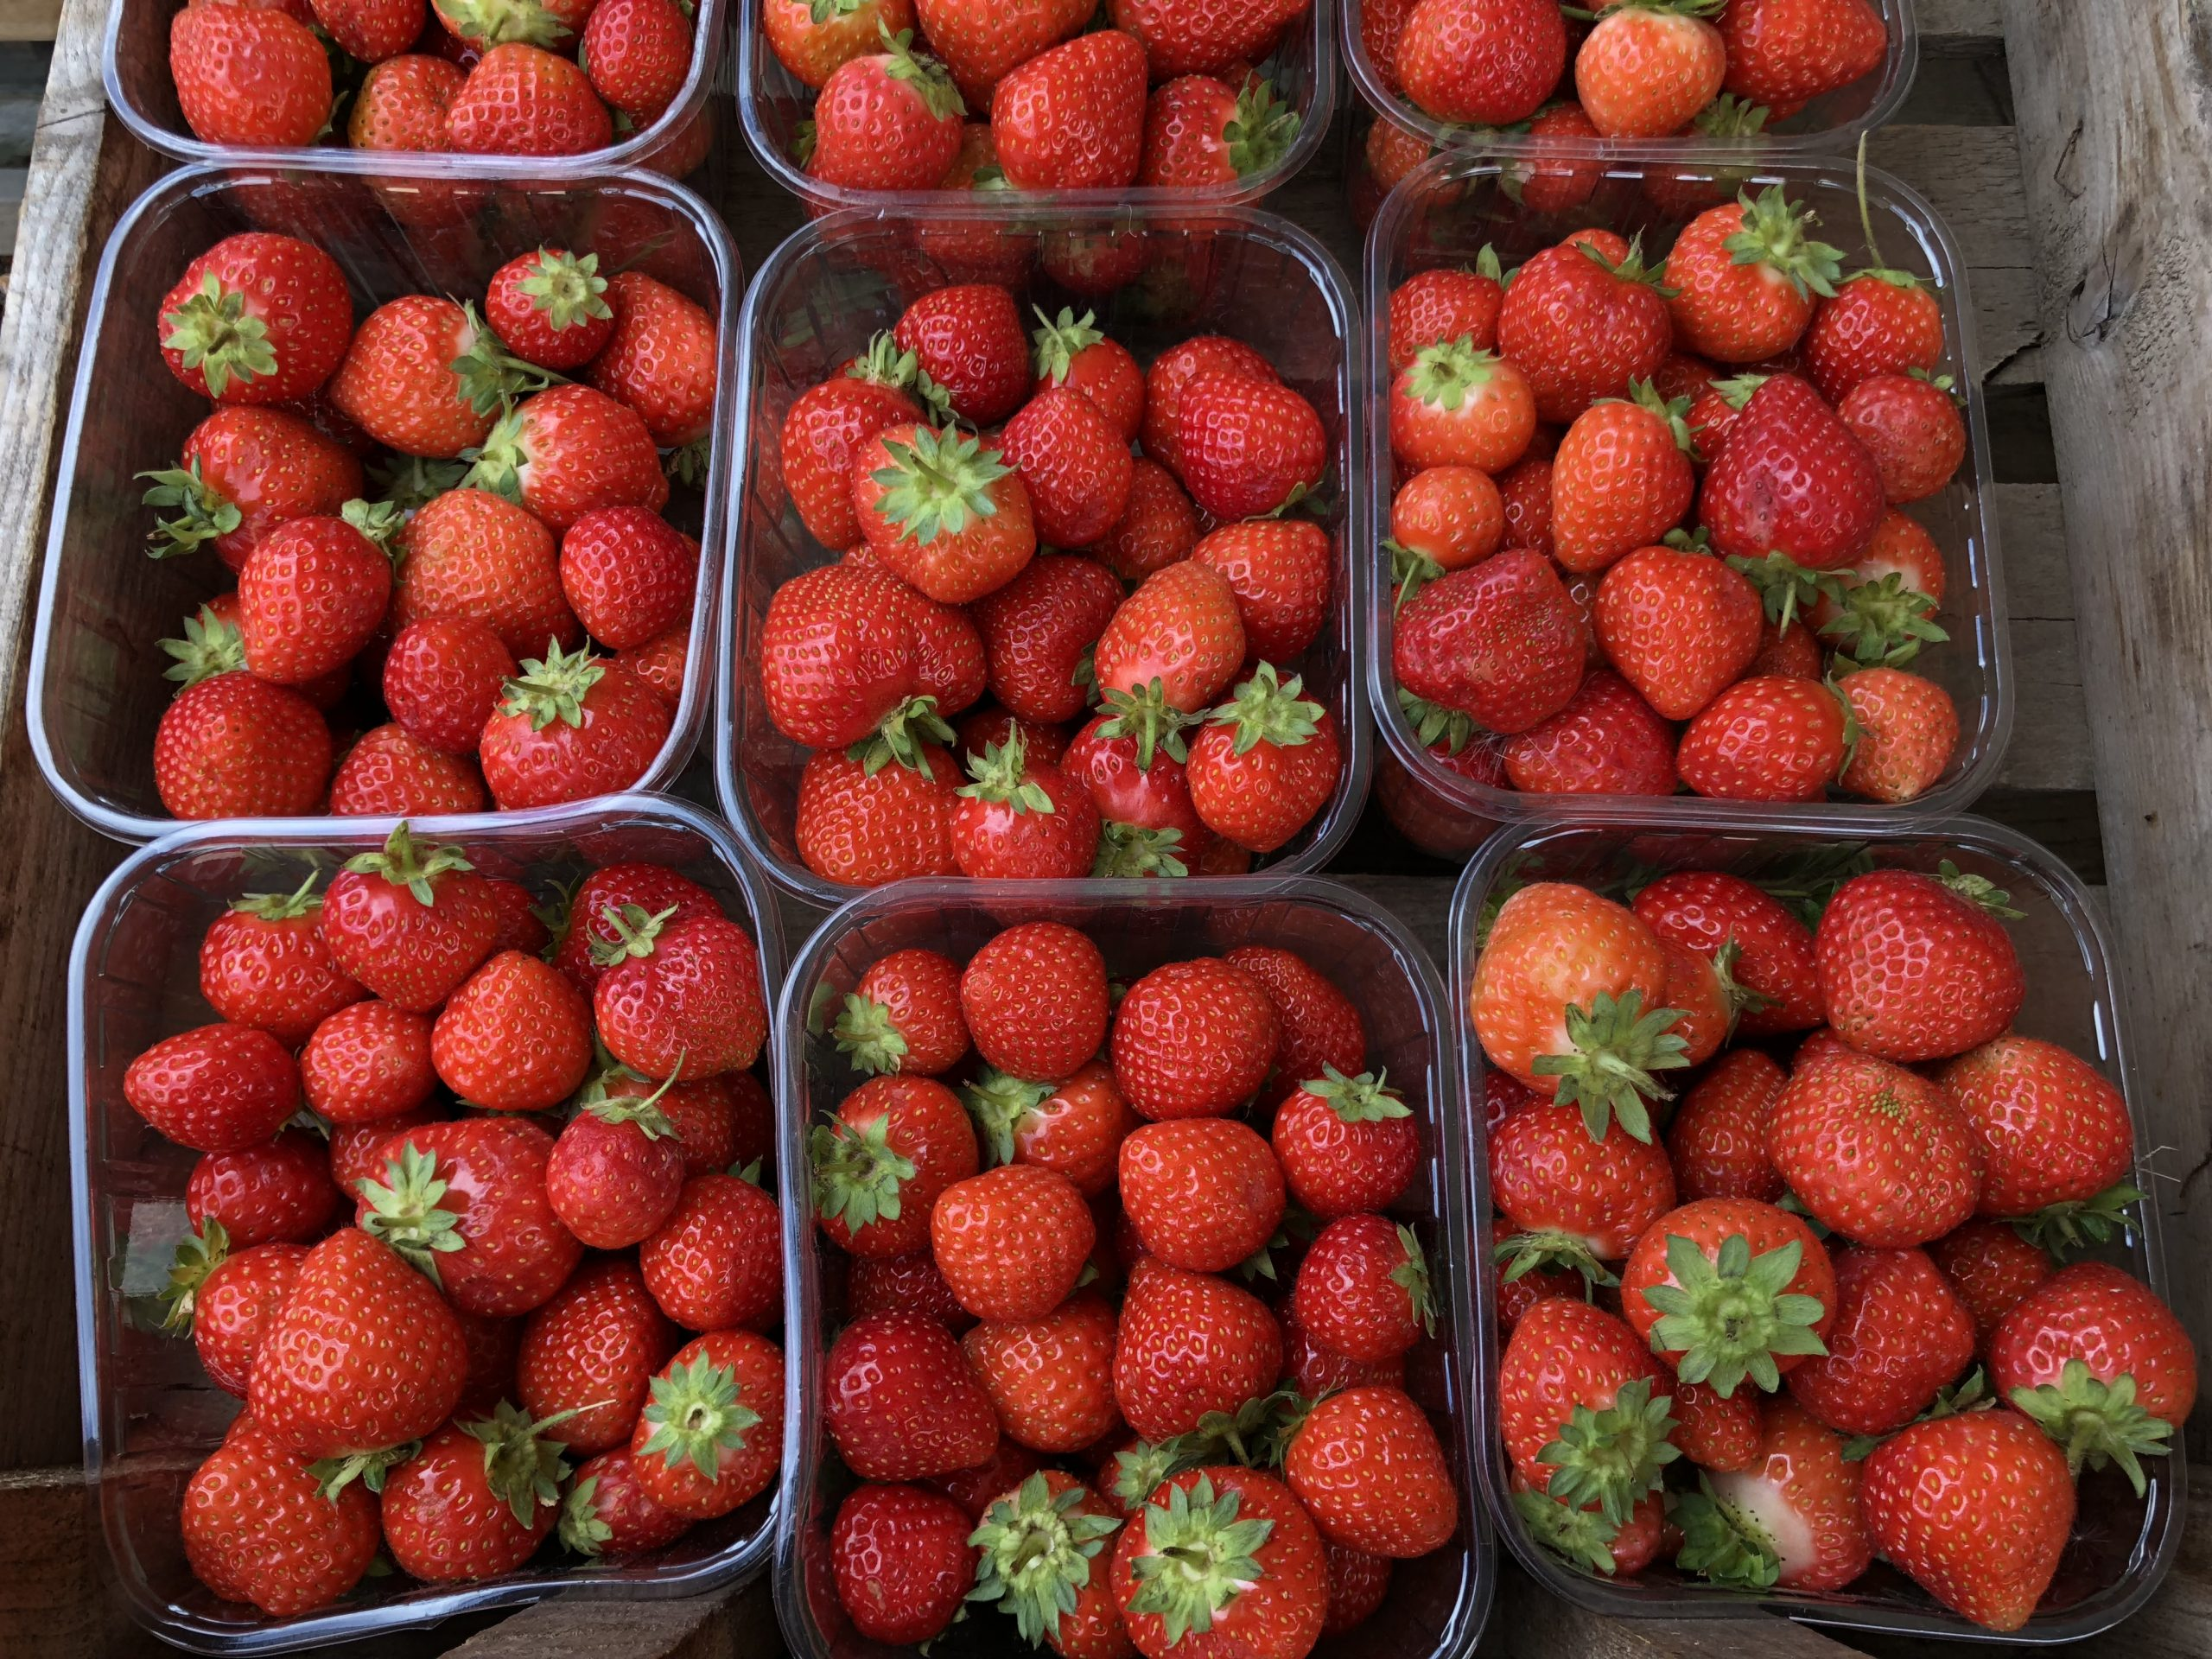 Punnets of ripe strawberries